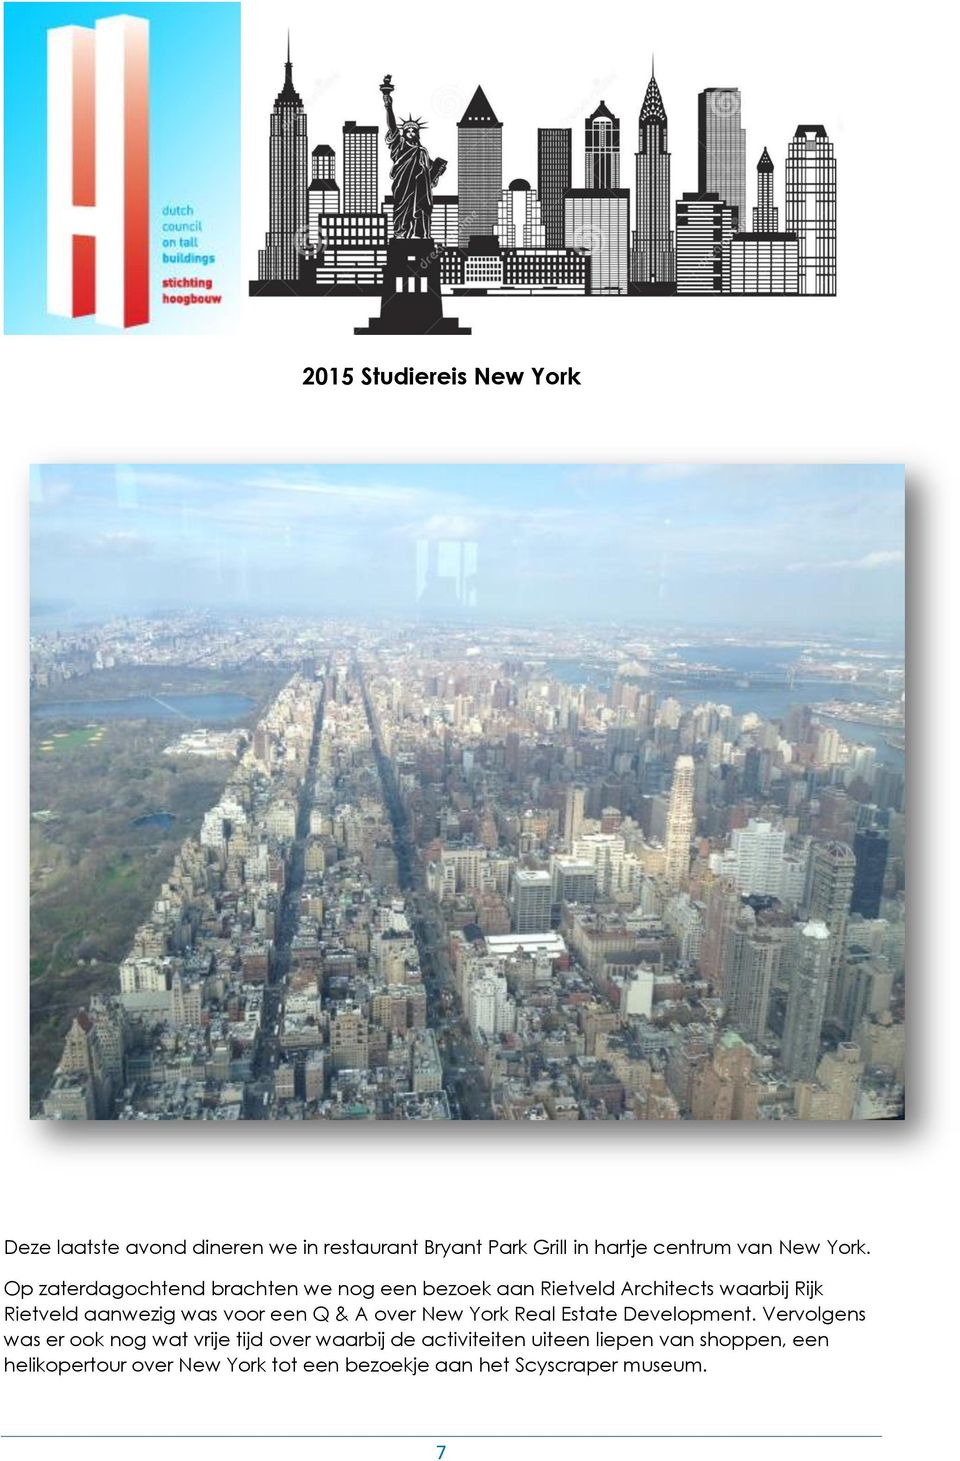 voor een Q & A over New York Real Estate Development.